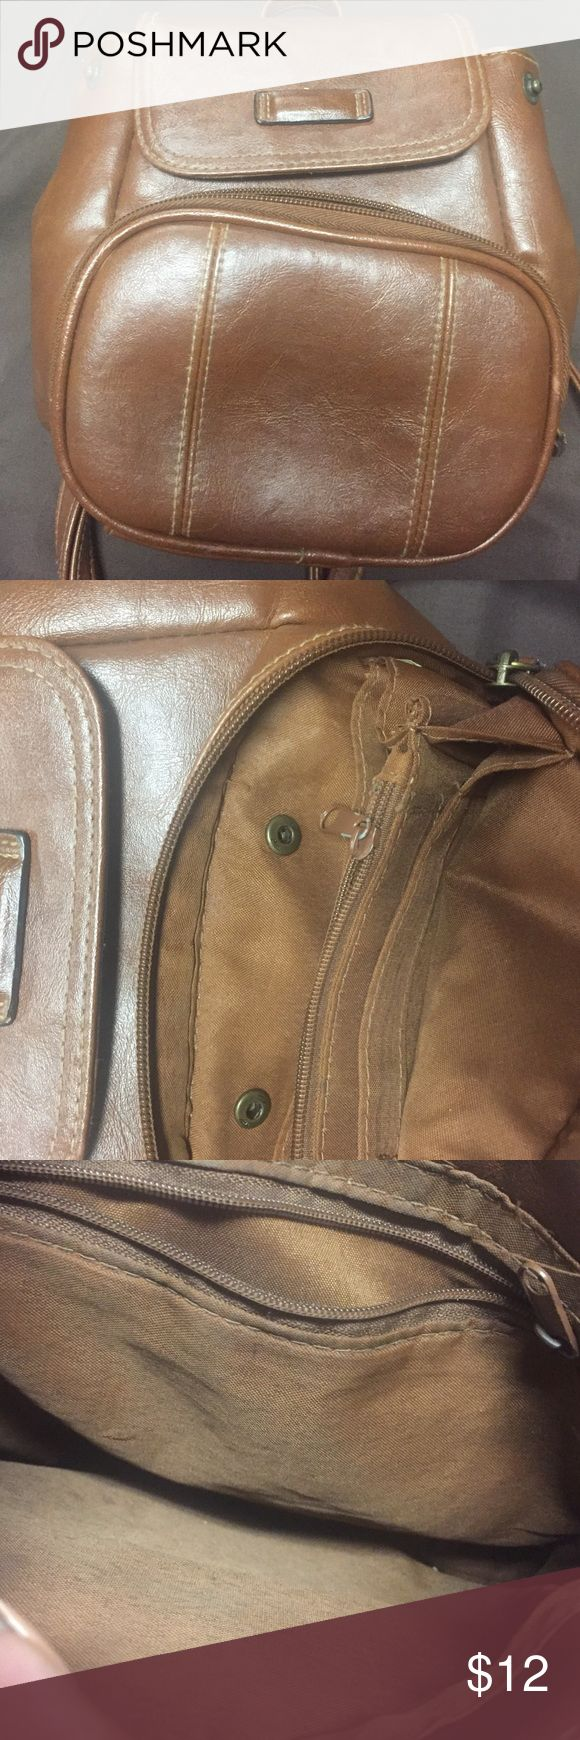 Mini brown backpack Very cute and casual. Nice addition to any outfit. Bags Mini Bags